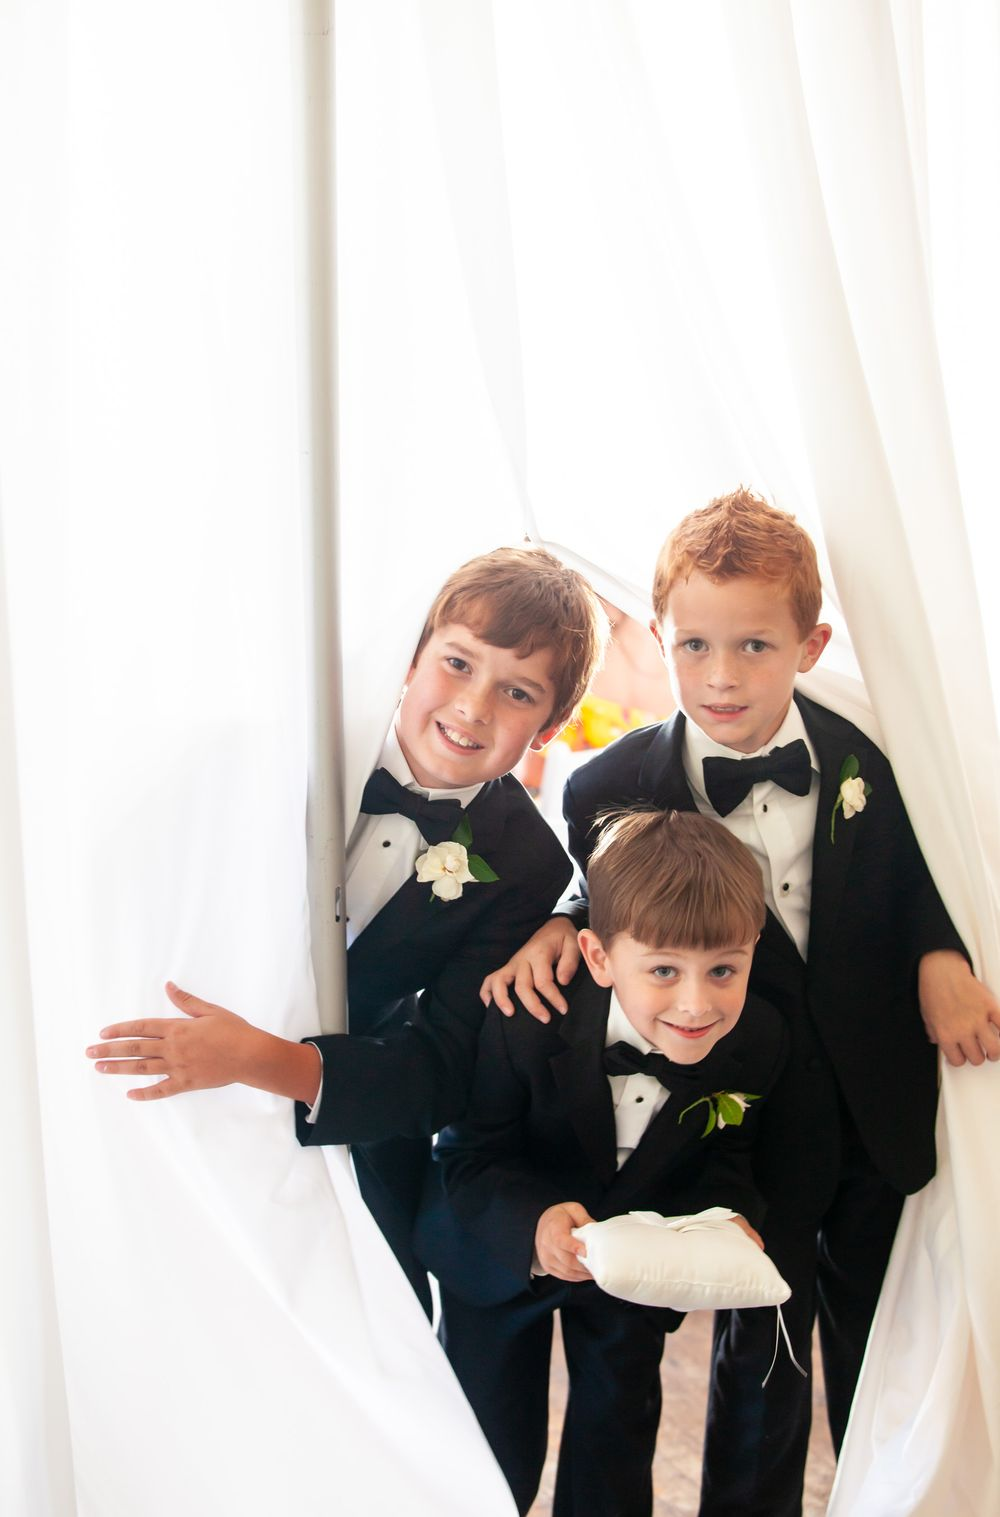 Ring bearers peak out from behind a curtain before a wedding at the SC State Museum in Columbia, SC.